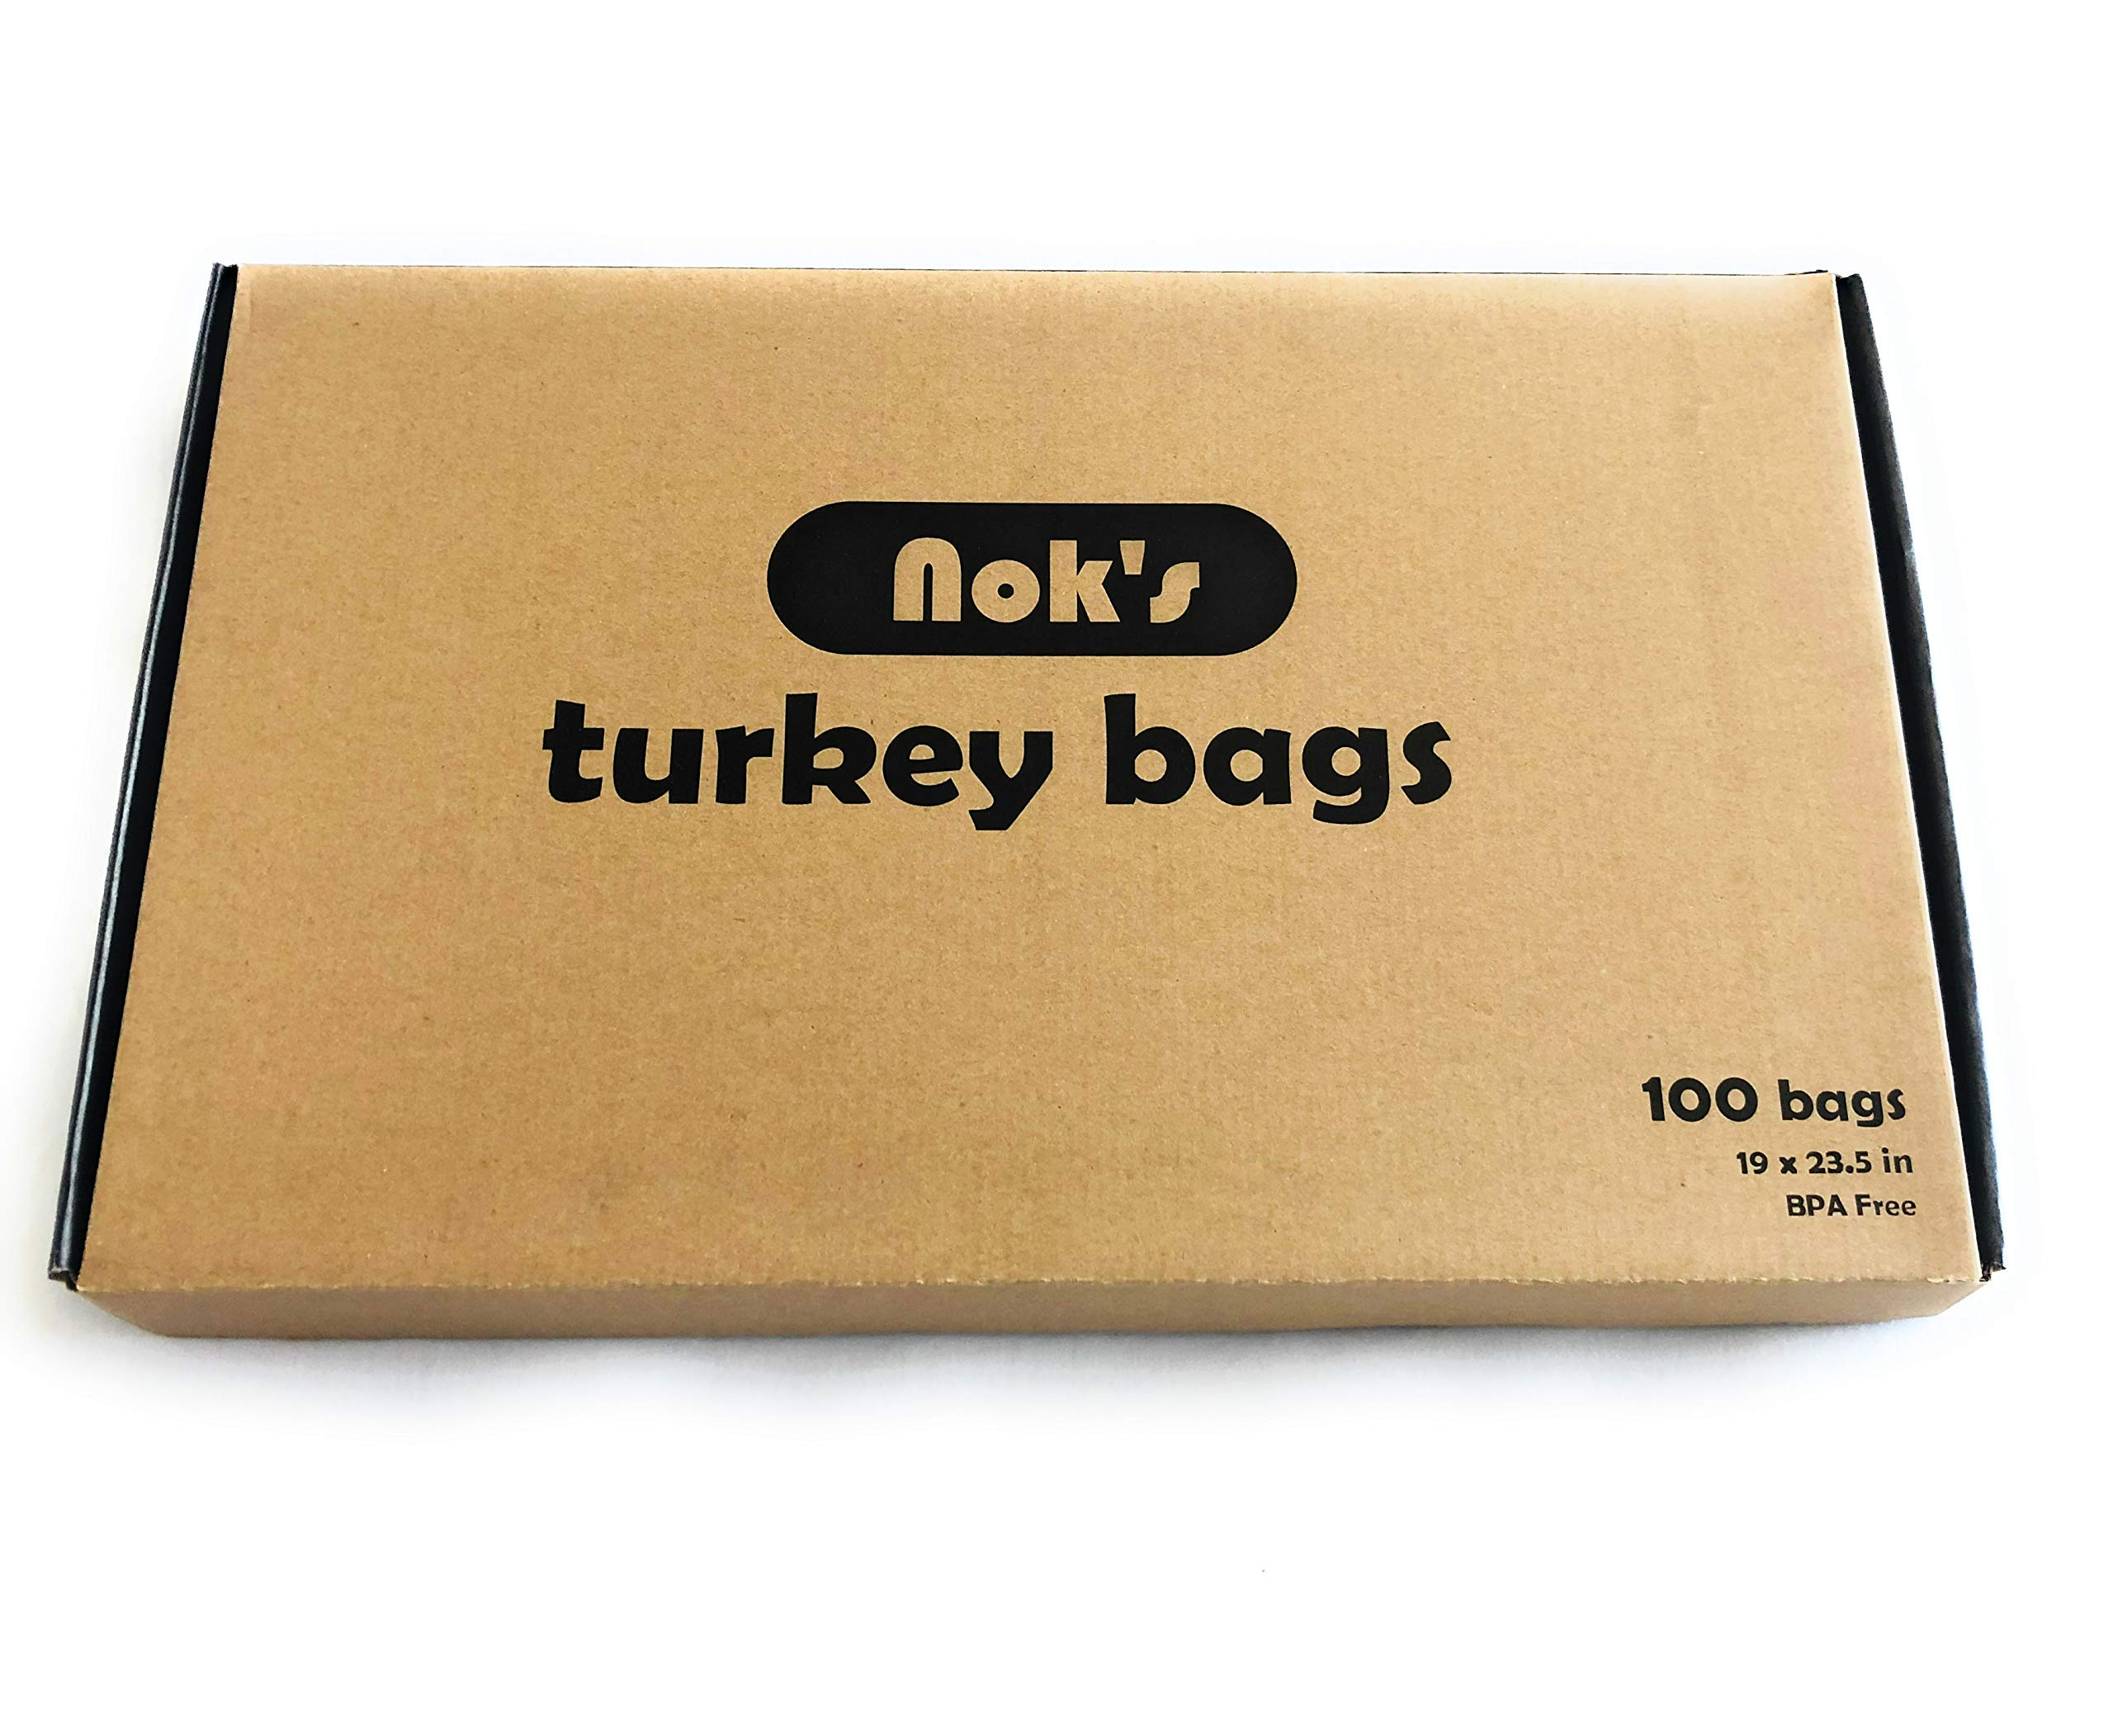 Oven Bags Large Turkey Size - 100 counts, 23.5 x 19 Inch - Kitchen and Garden Bag By Nok's Bag